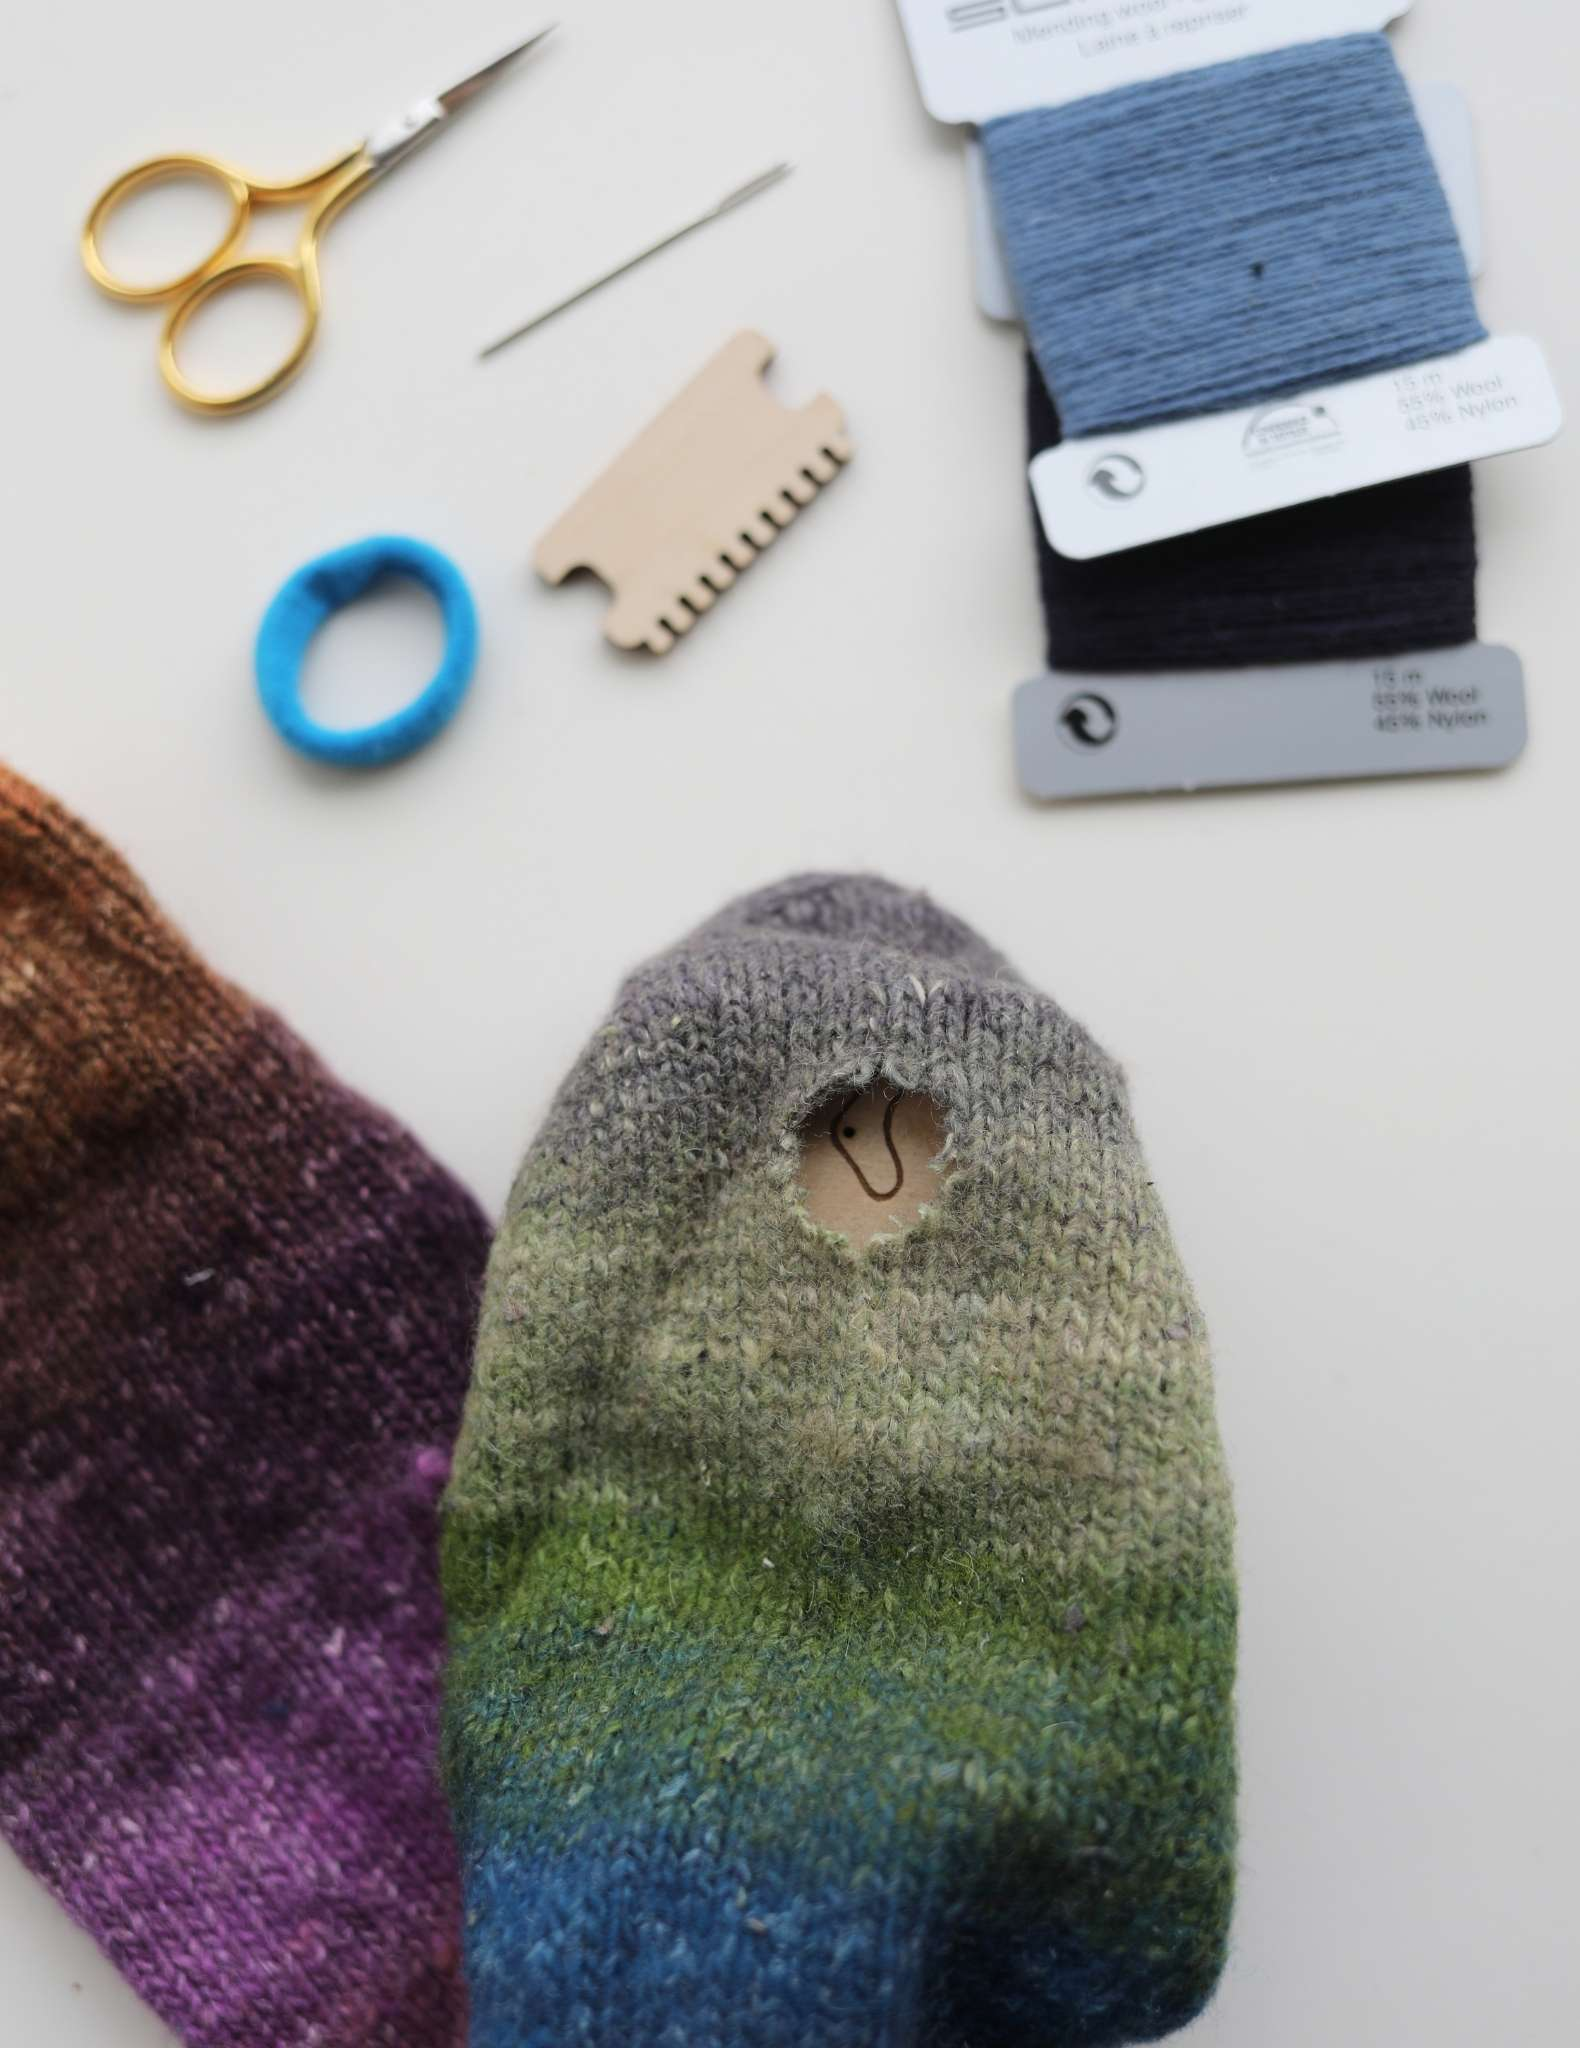 A multicoloured sock lies folded over, with a hole in the centre of the foot, near the toe. Above the sock is small yellow scissors, a needle, a darning loom and blue and black mending thread.